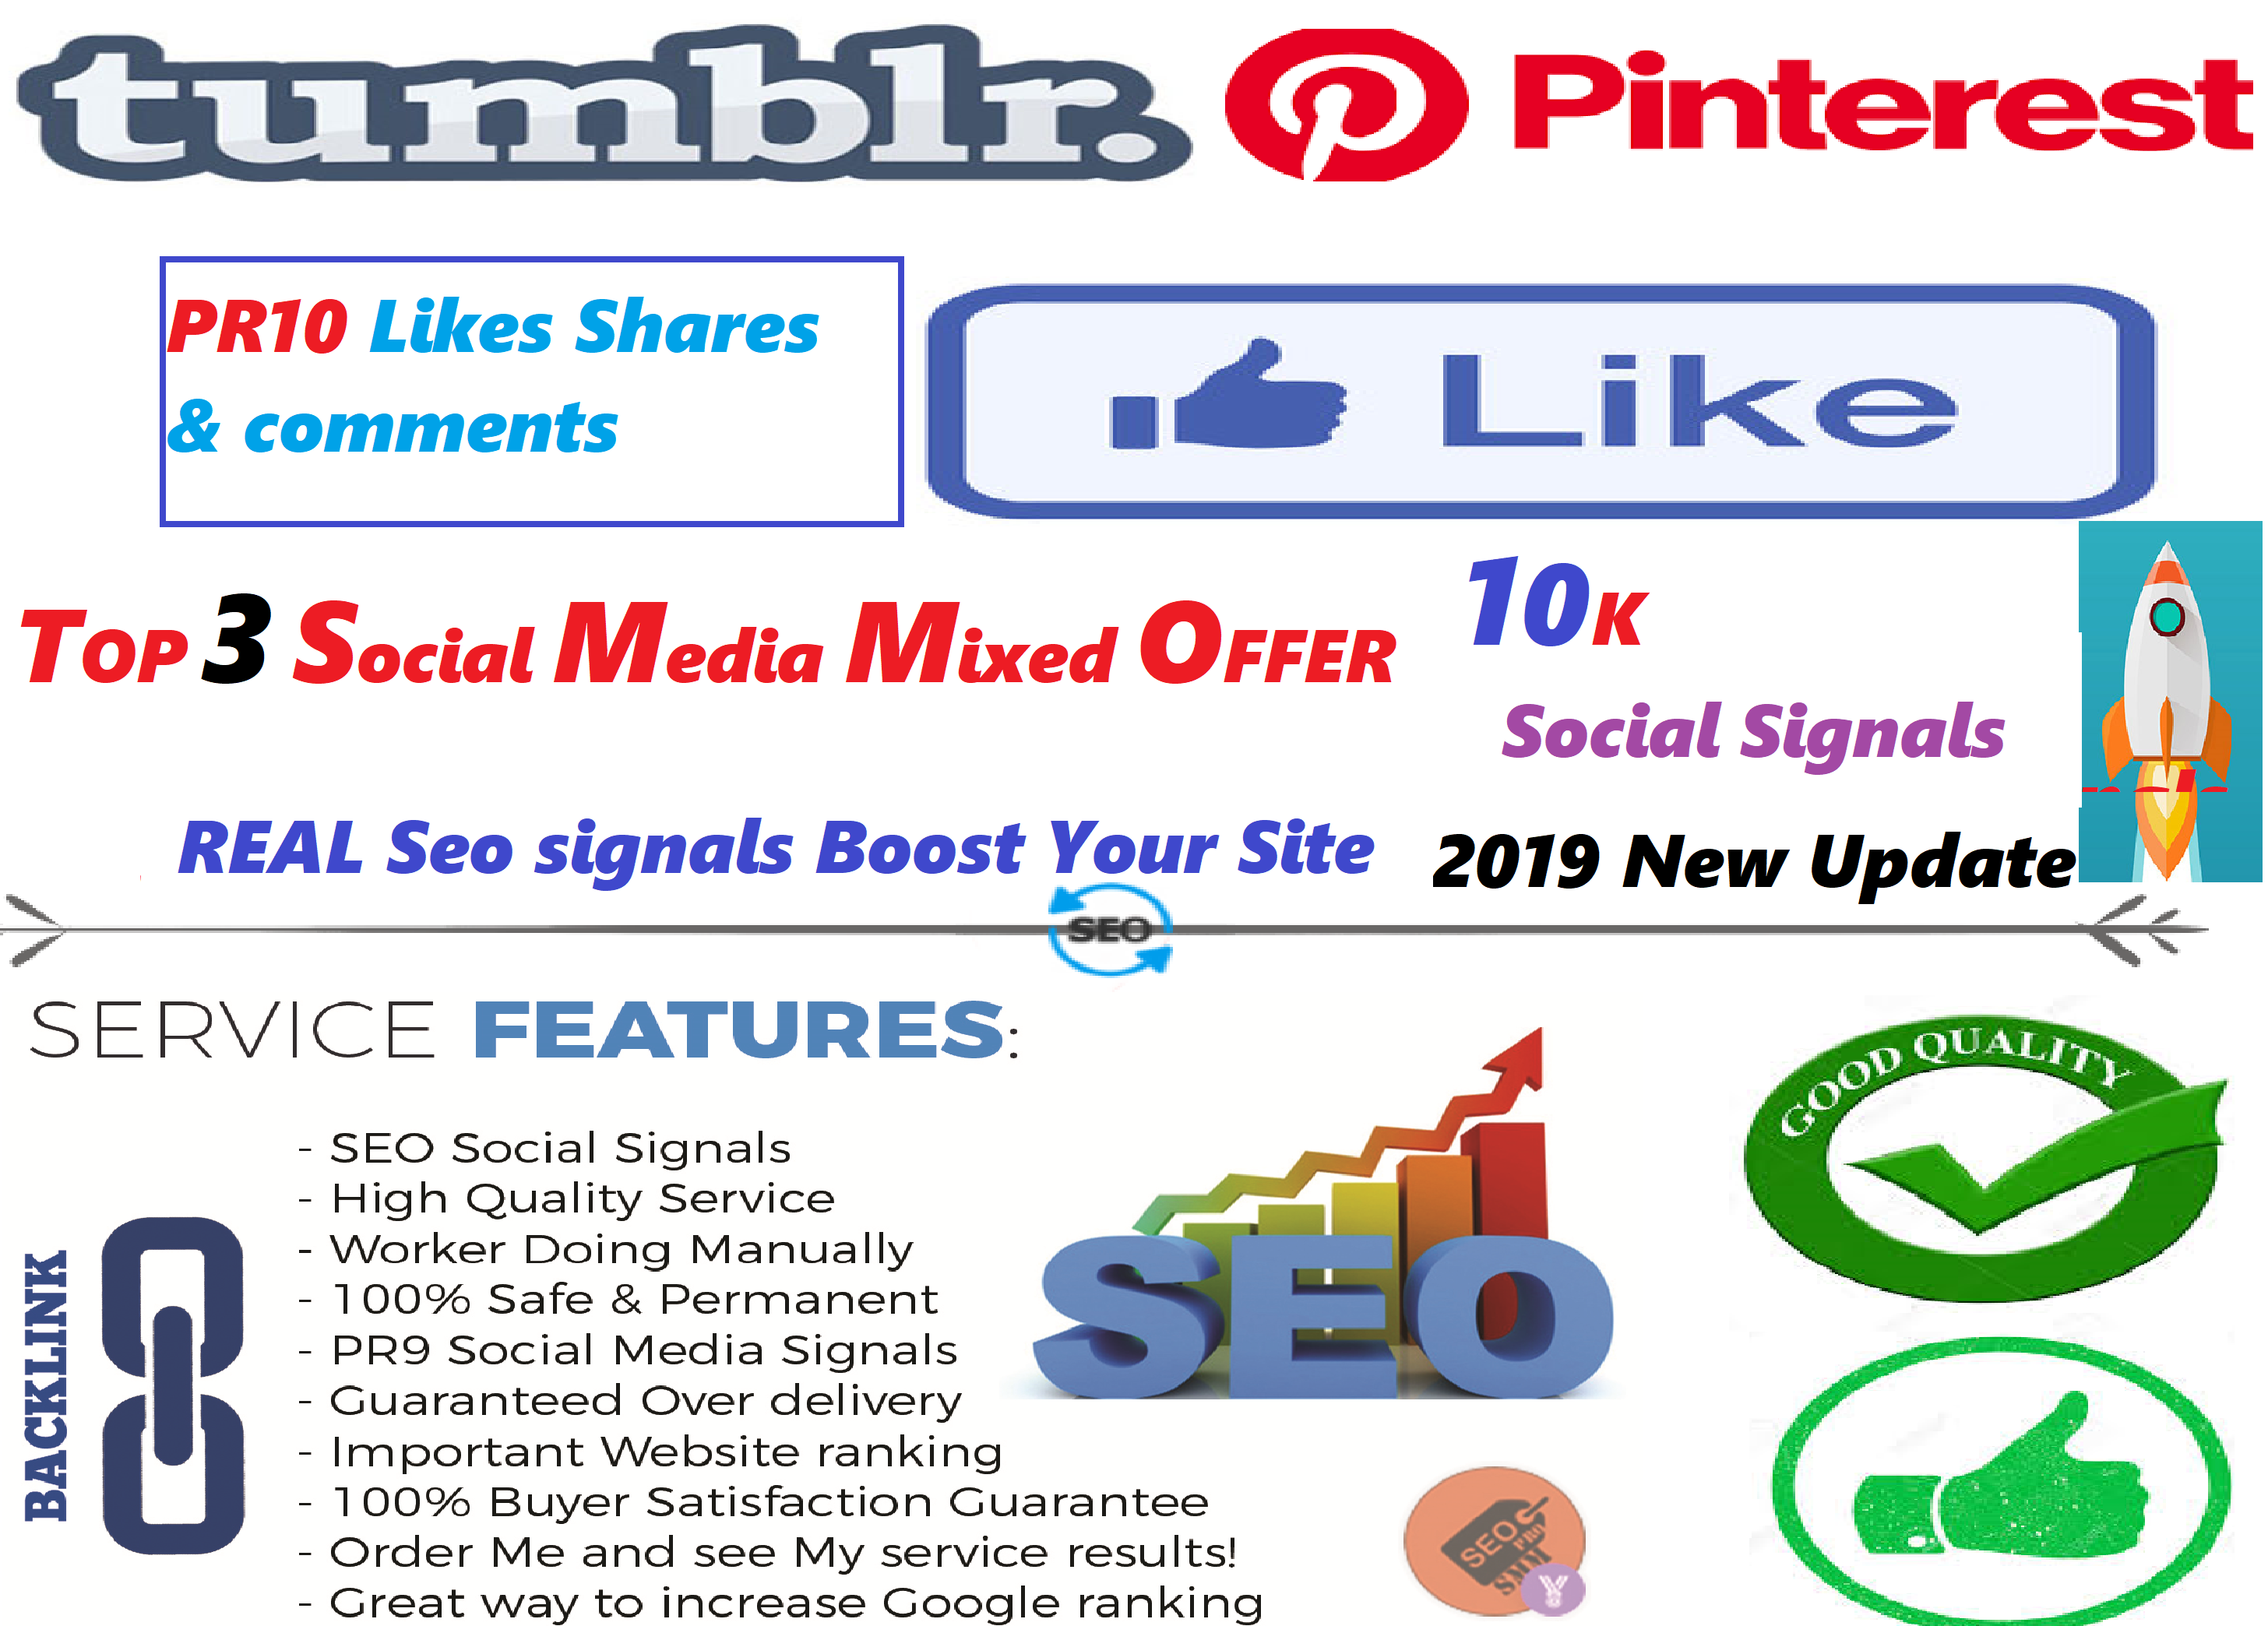 NO1 Social Media Platform 10K+ PR8/9/10 SEO Social Signals Share Bookmarks Important Google Ranking